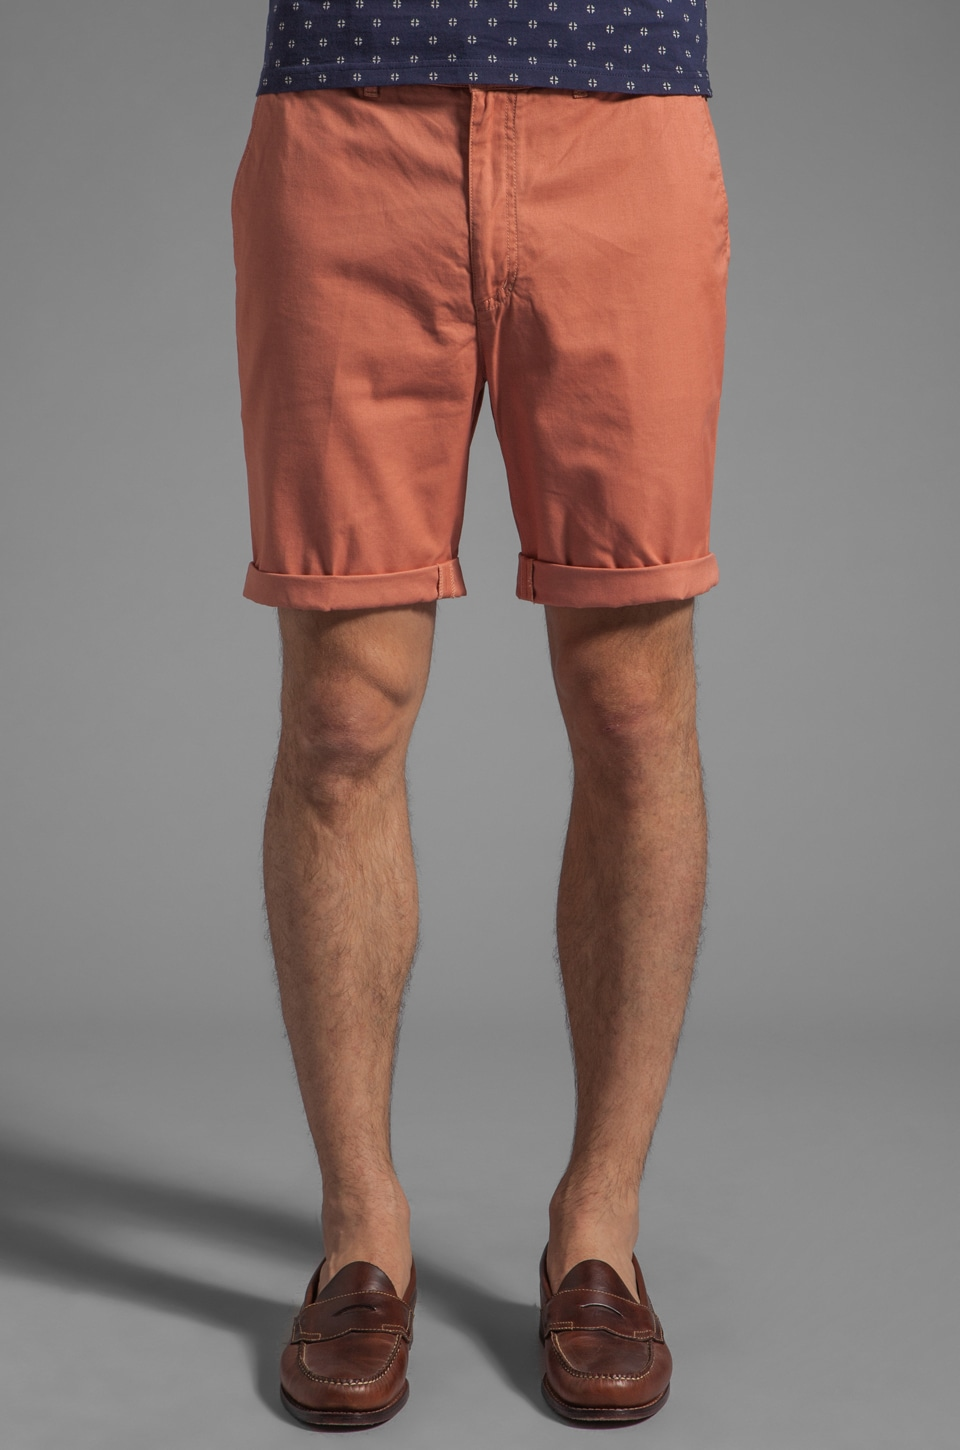 FARAH VINTAGE The Chester Twill Short in Trash Pink